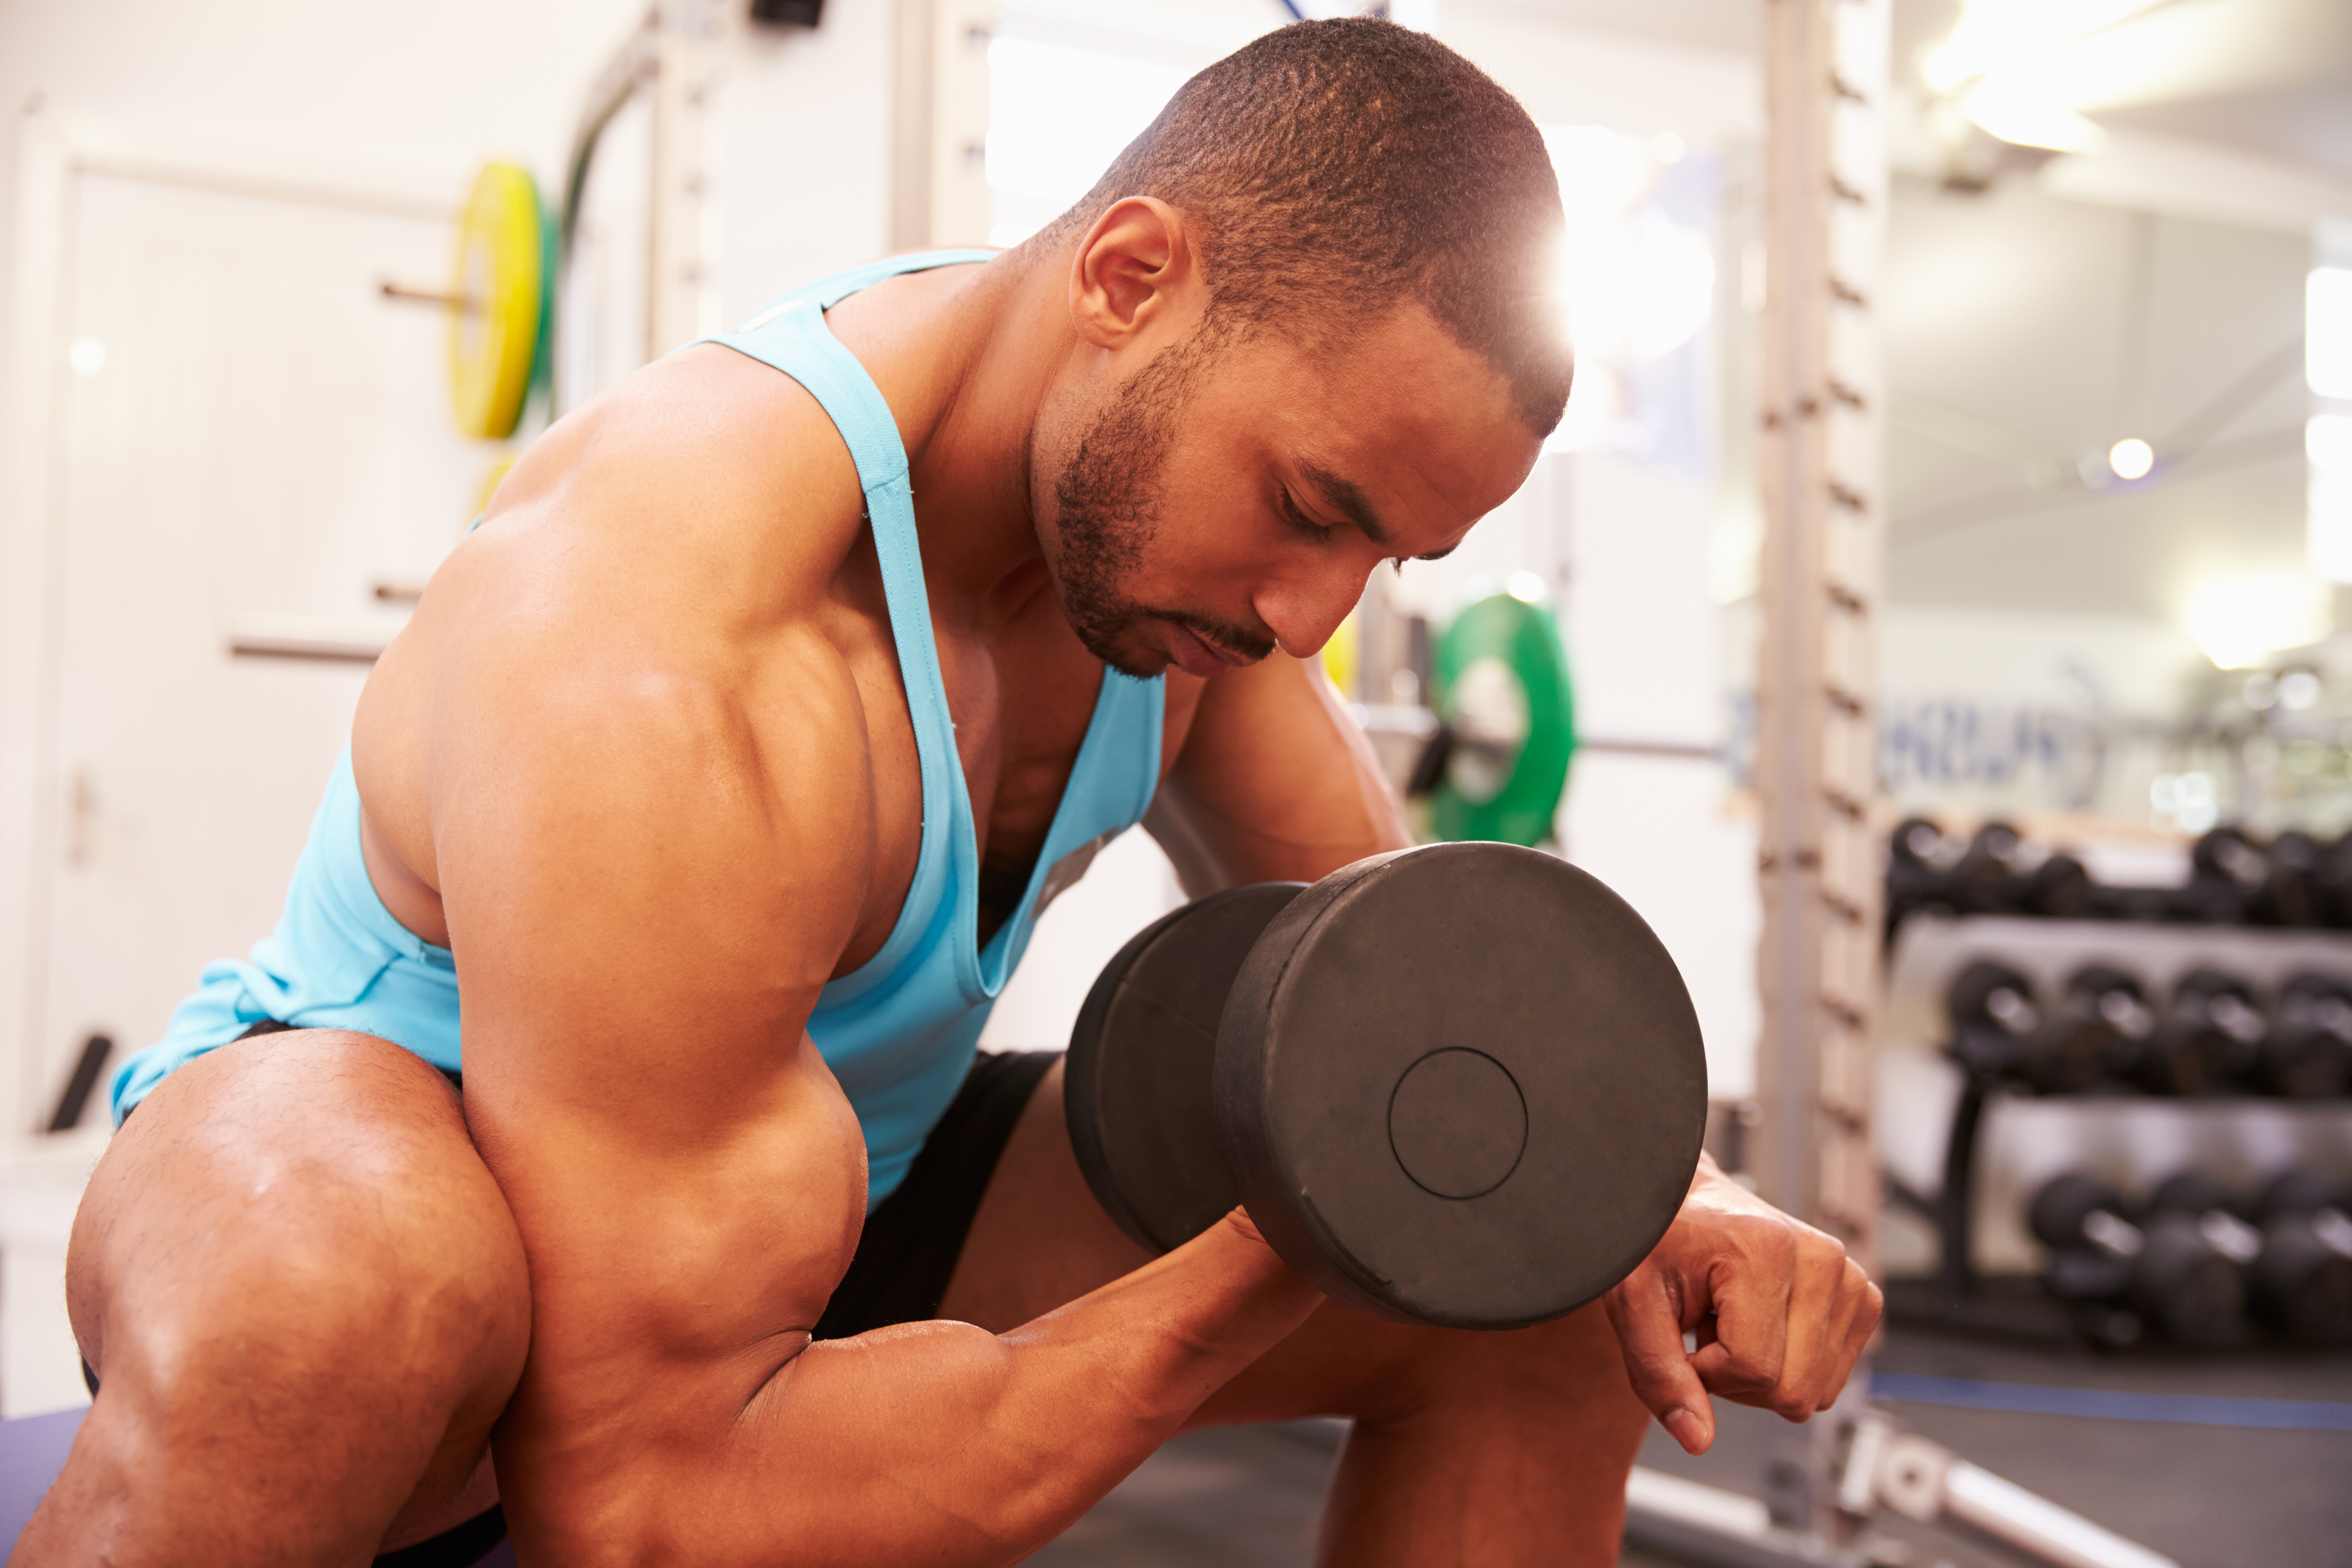 Remarkable Website - Buy Nandrolone in Britain Will Help You Get There